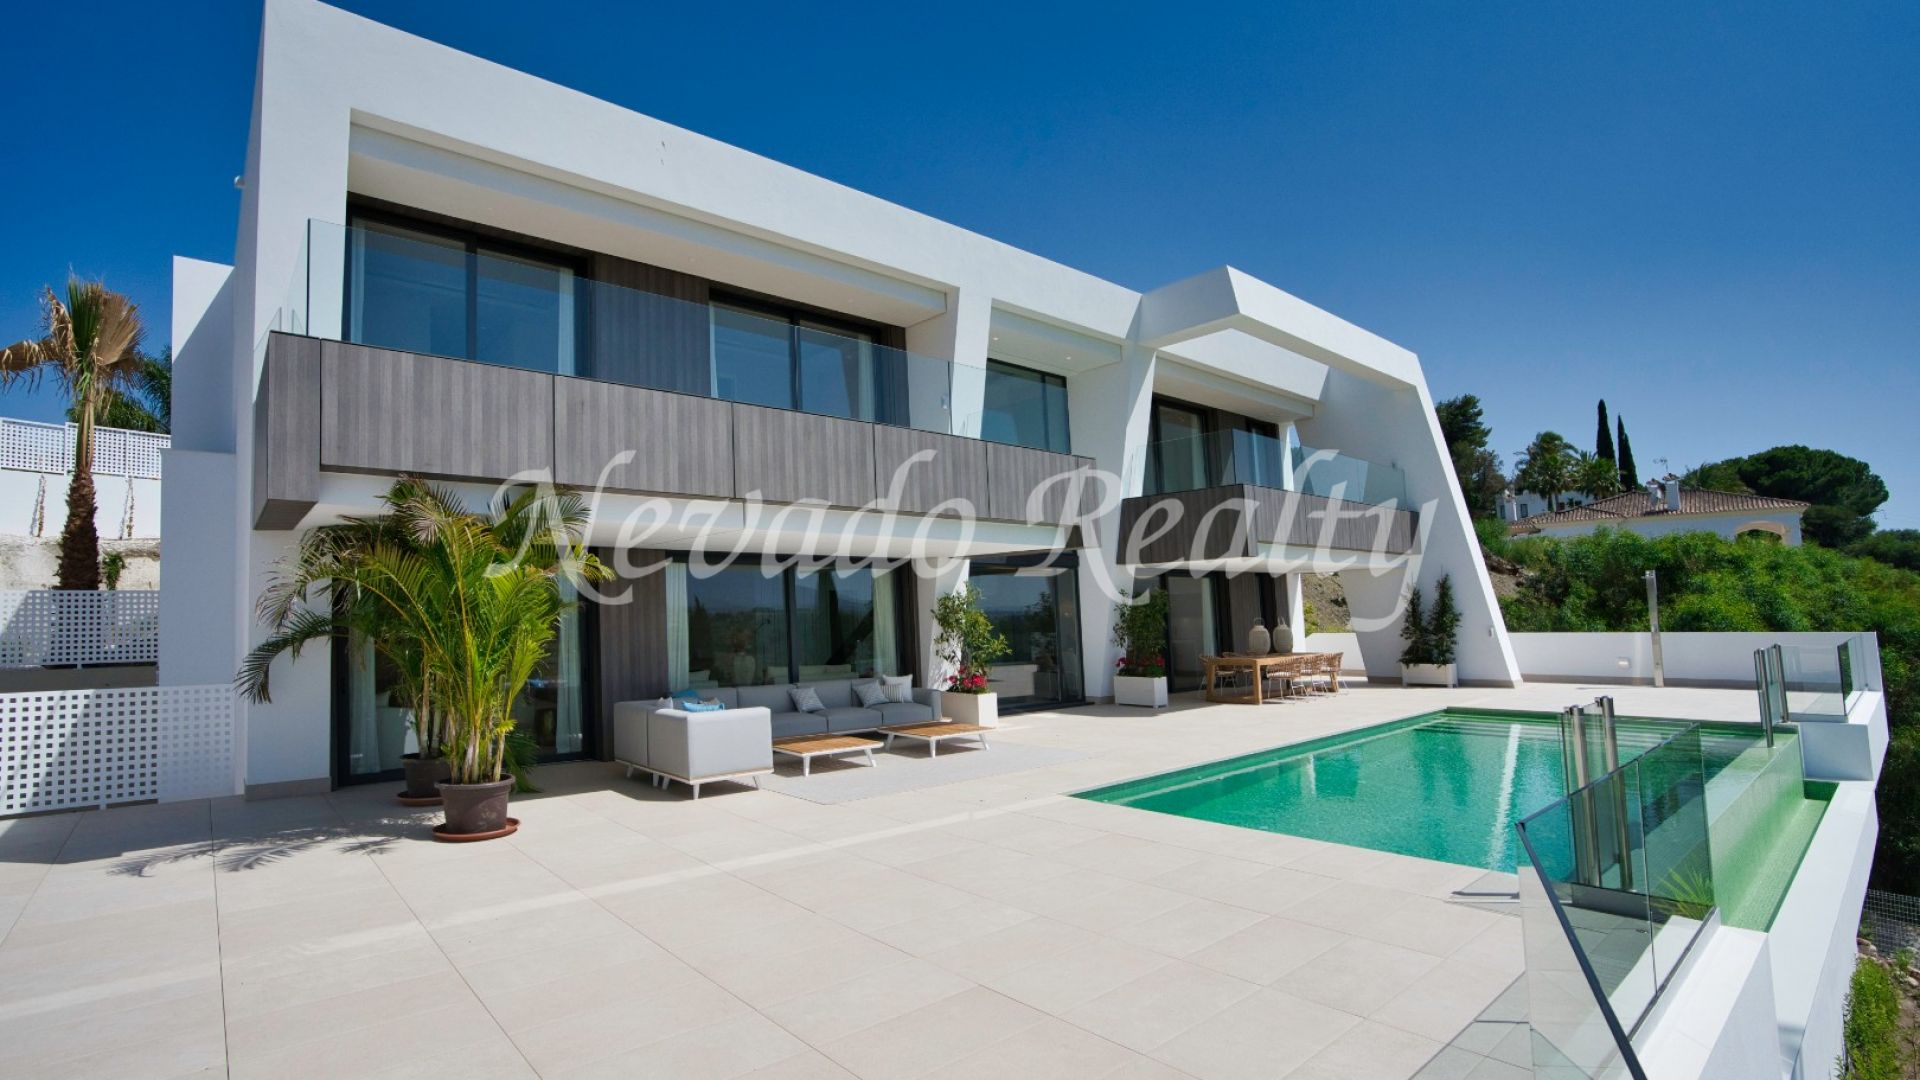 Brand new villa for sale overlooking the golf course in El Paraiso